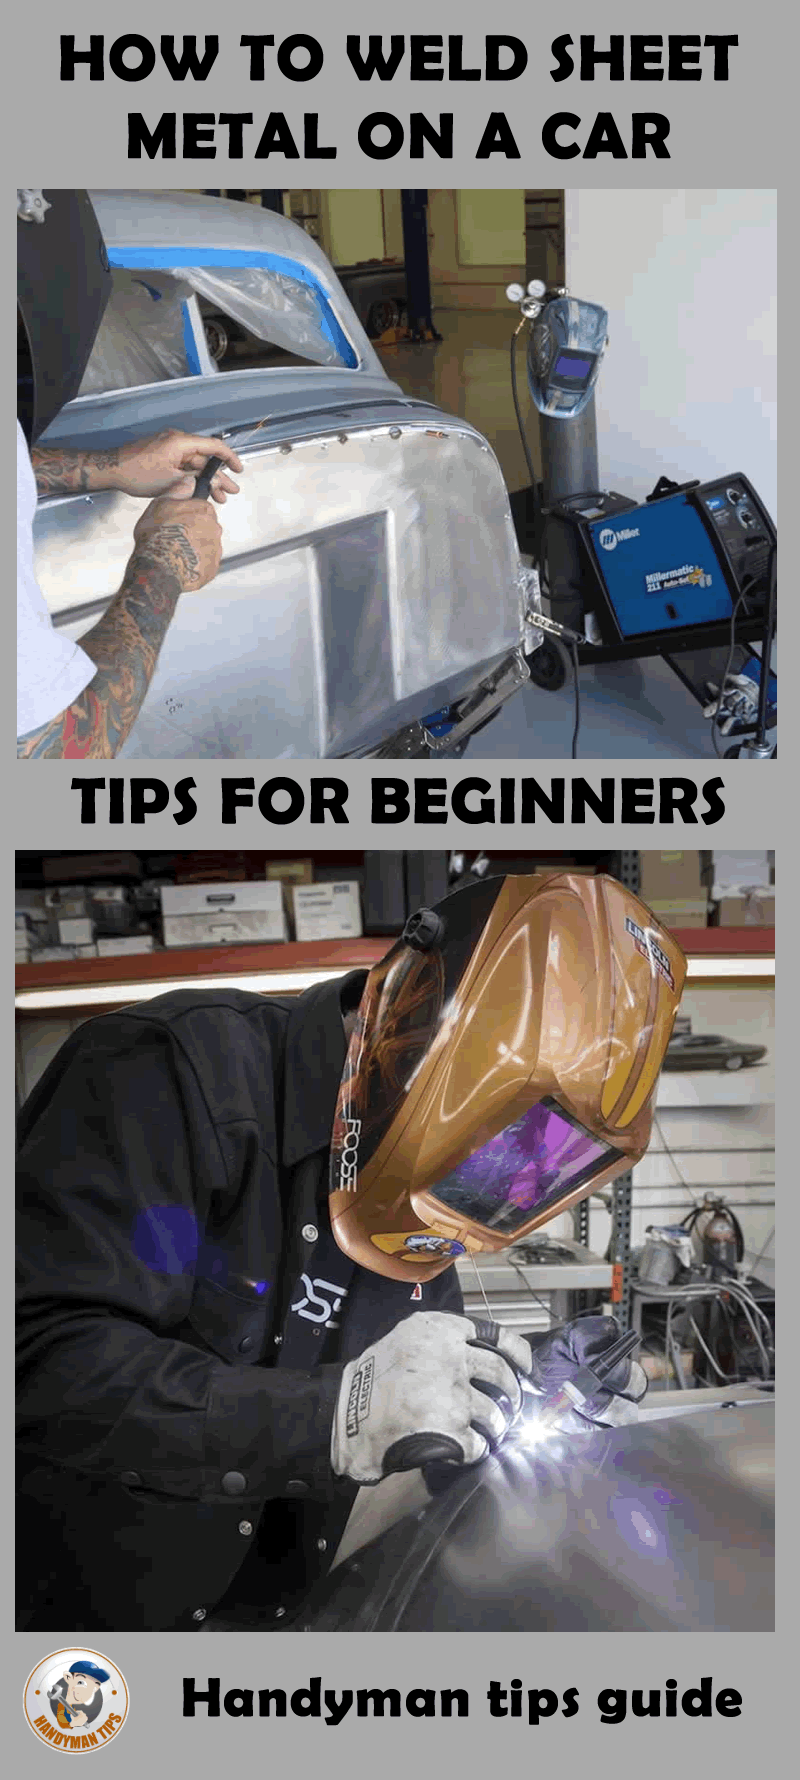 How To Weld Sheet Metal On A Car Diy Welding Welding Projects Welding And Fabrication